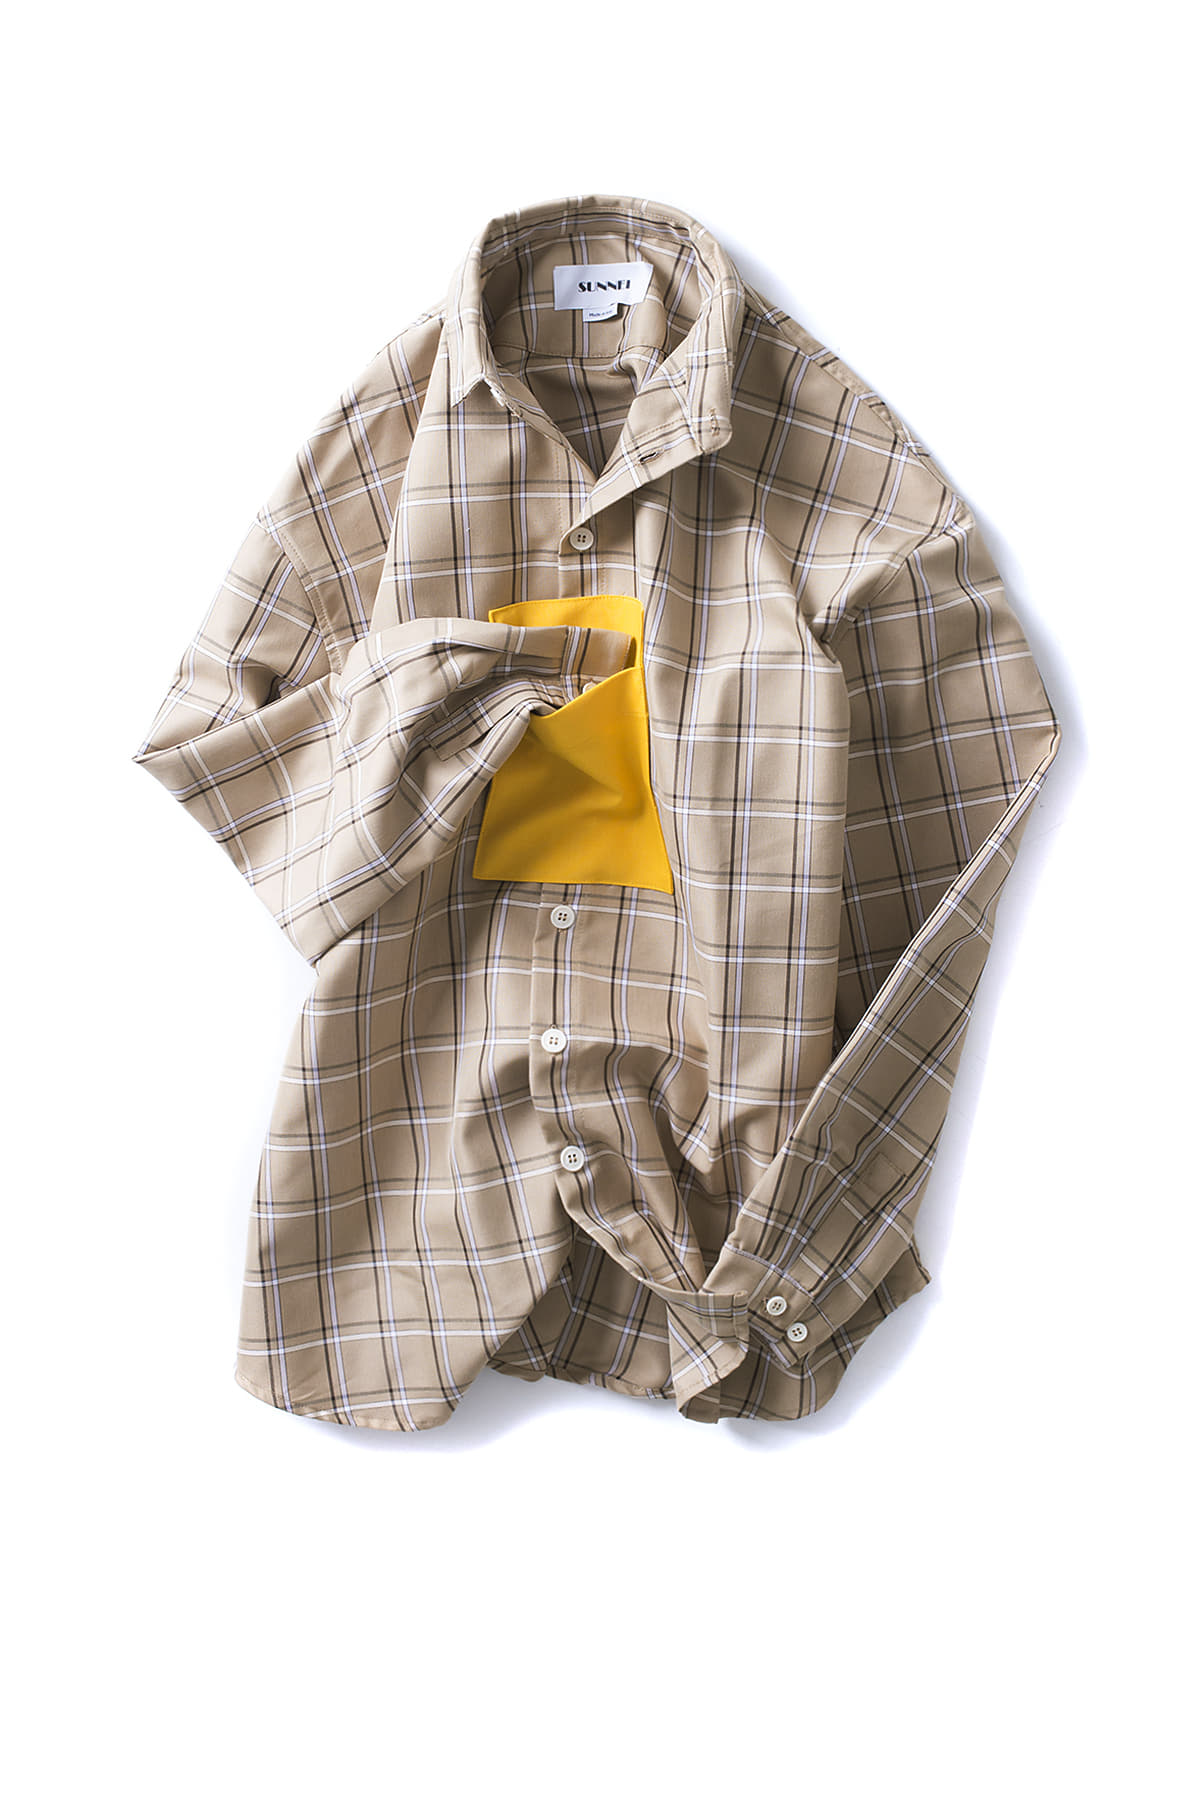 SUNNEI : Shirt With Pocket Panel (Beige Check)